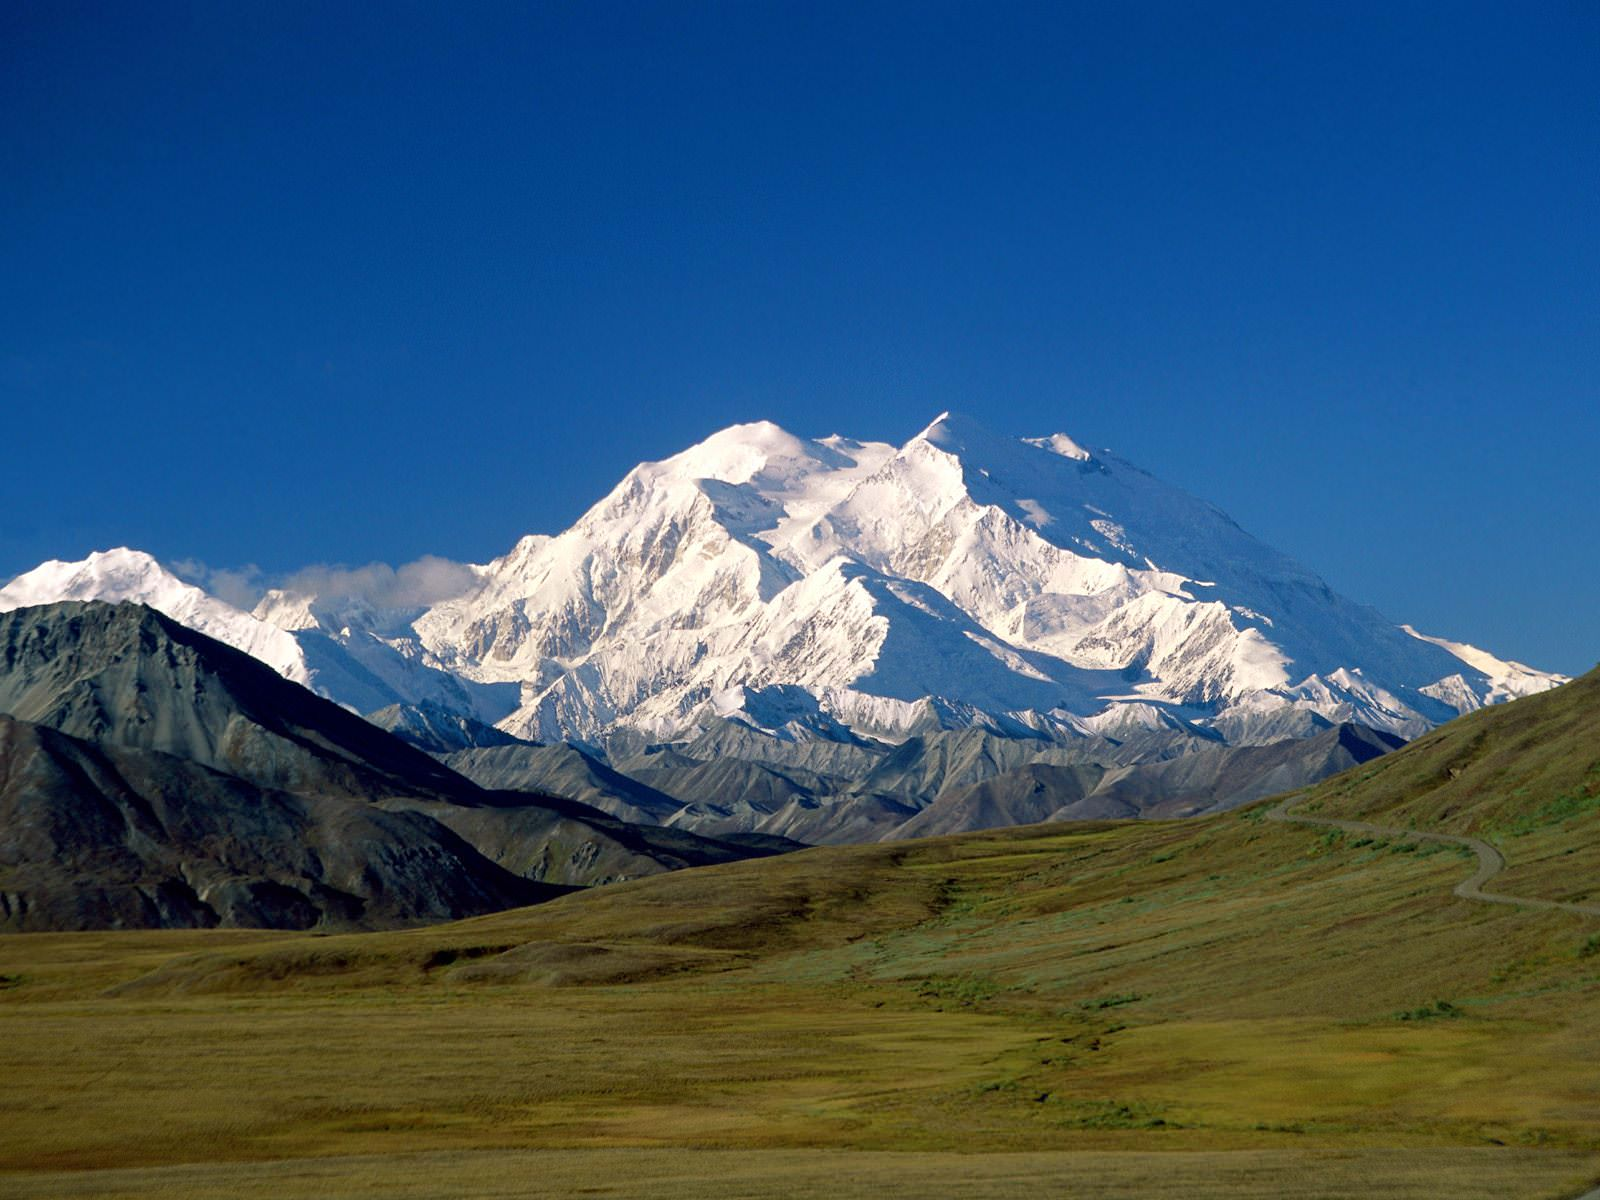 McKinley (Denali) Mountain, Alaska, USA